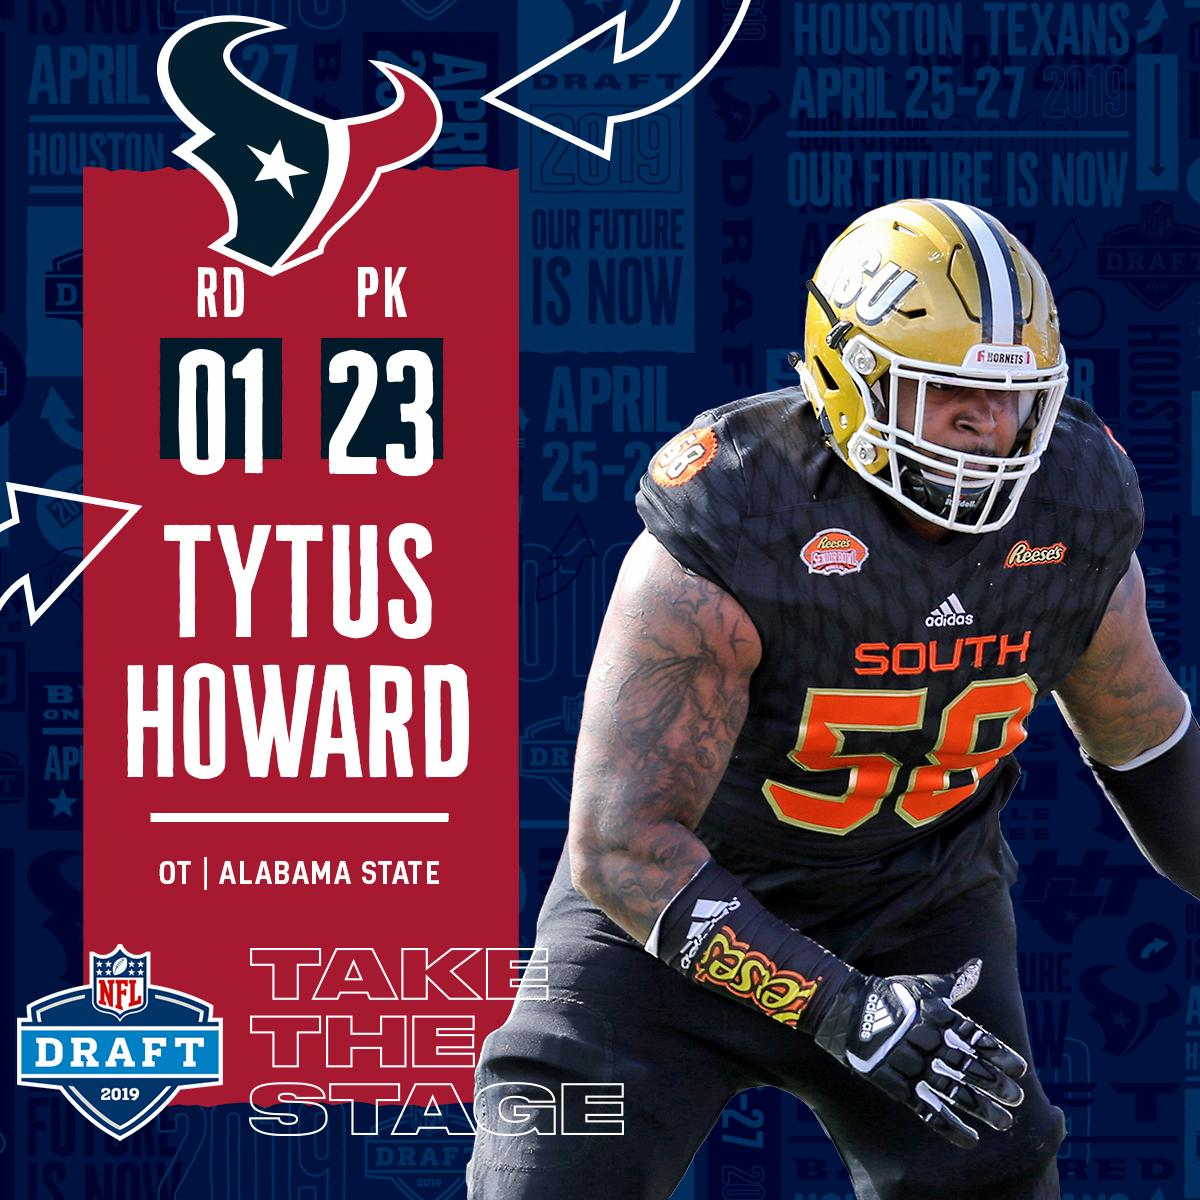 NFL's photo on Tytus Howard